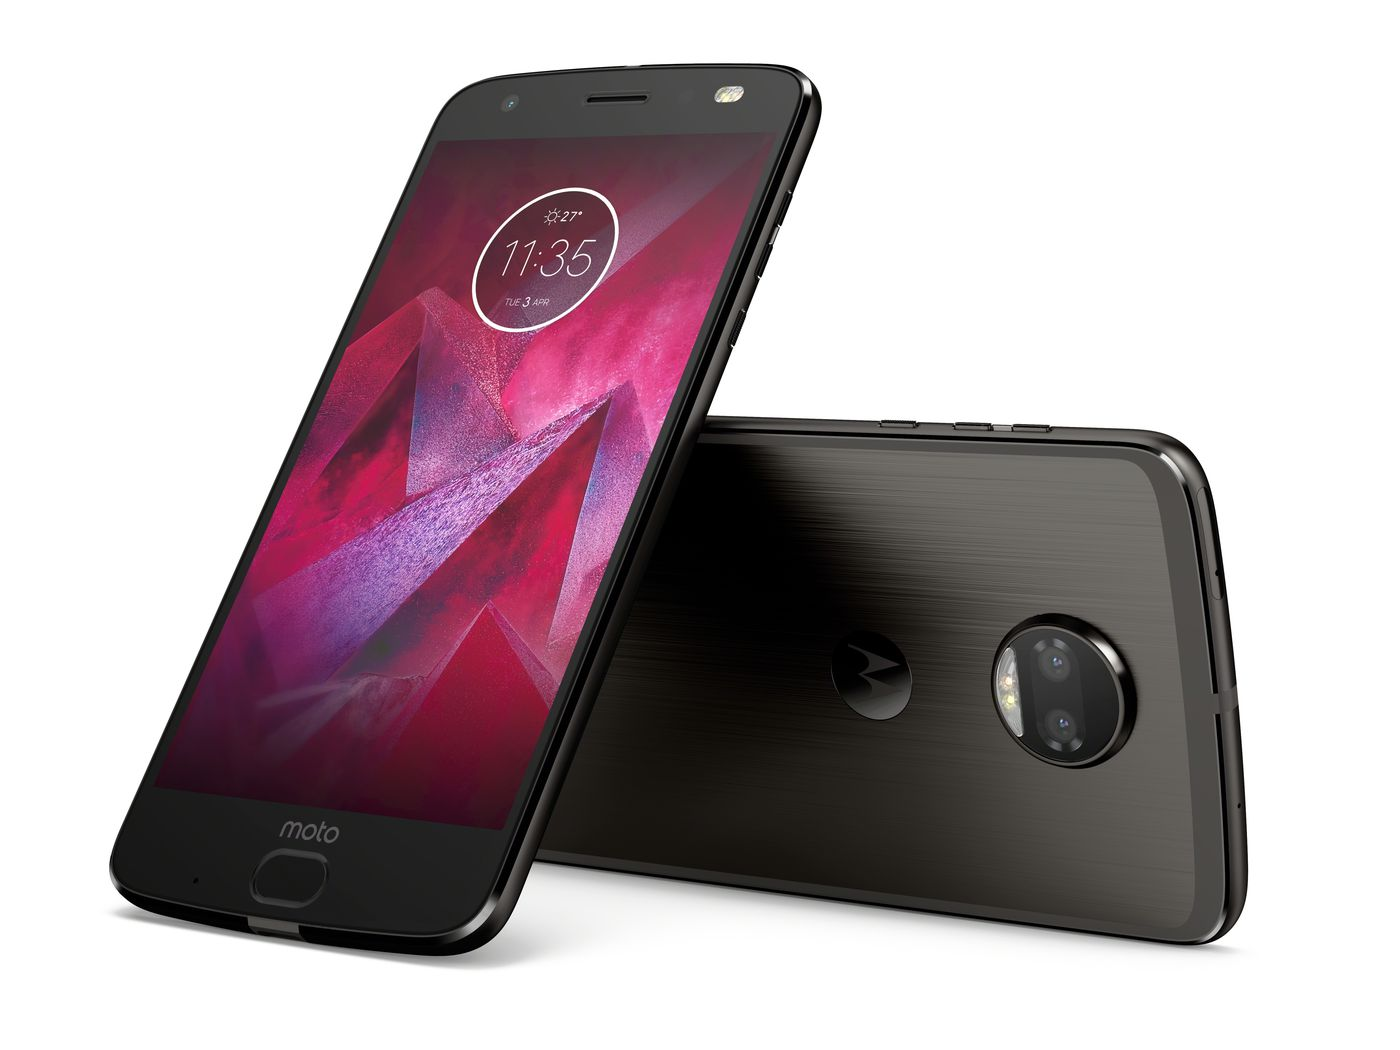 new product 68846 e4c64 The Moto Z2 Force doubles the cameras, keeps the shatterproof screen ...